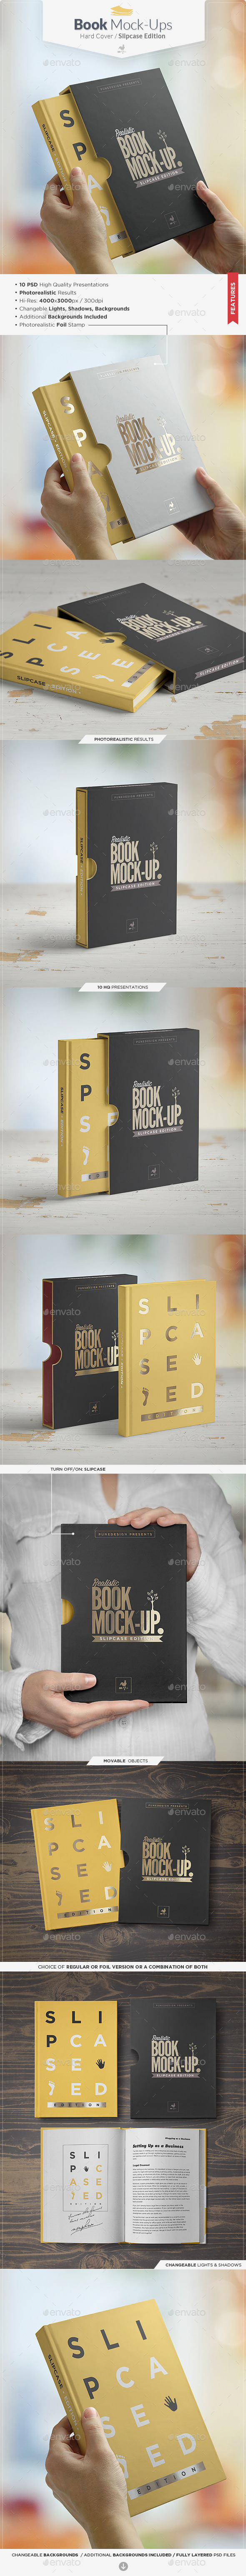 GraphicRiver Book Mock-up Slipcase Edition 9332736